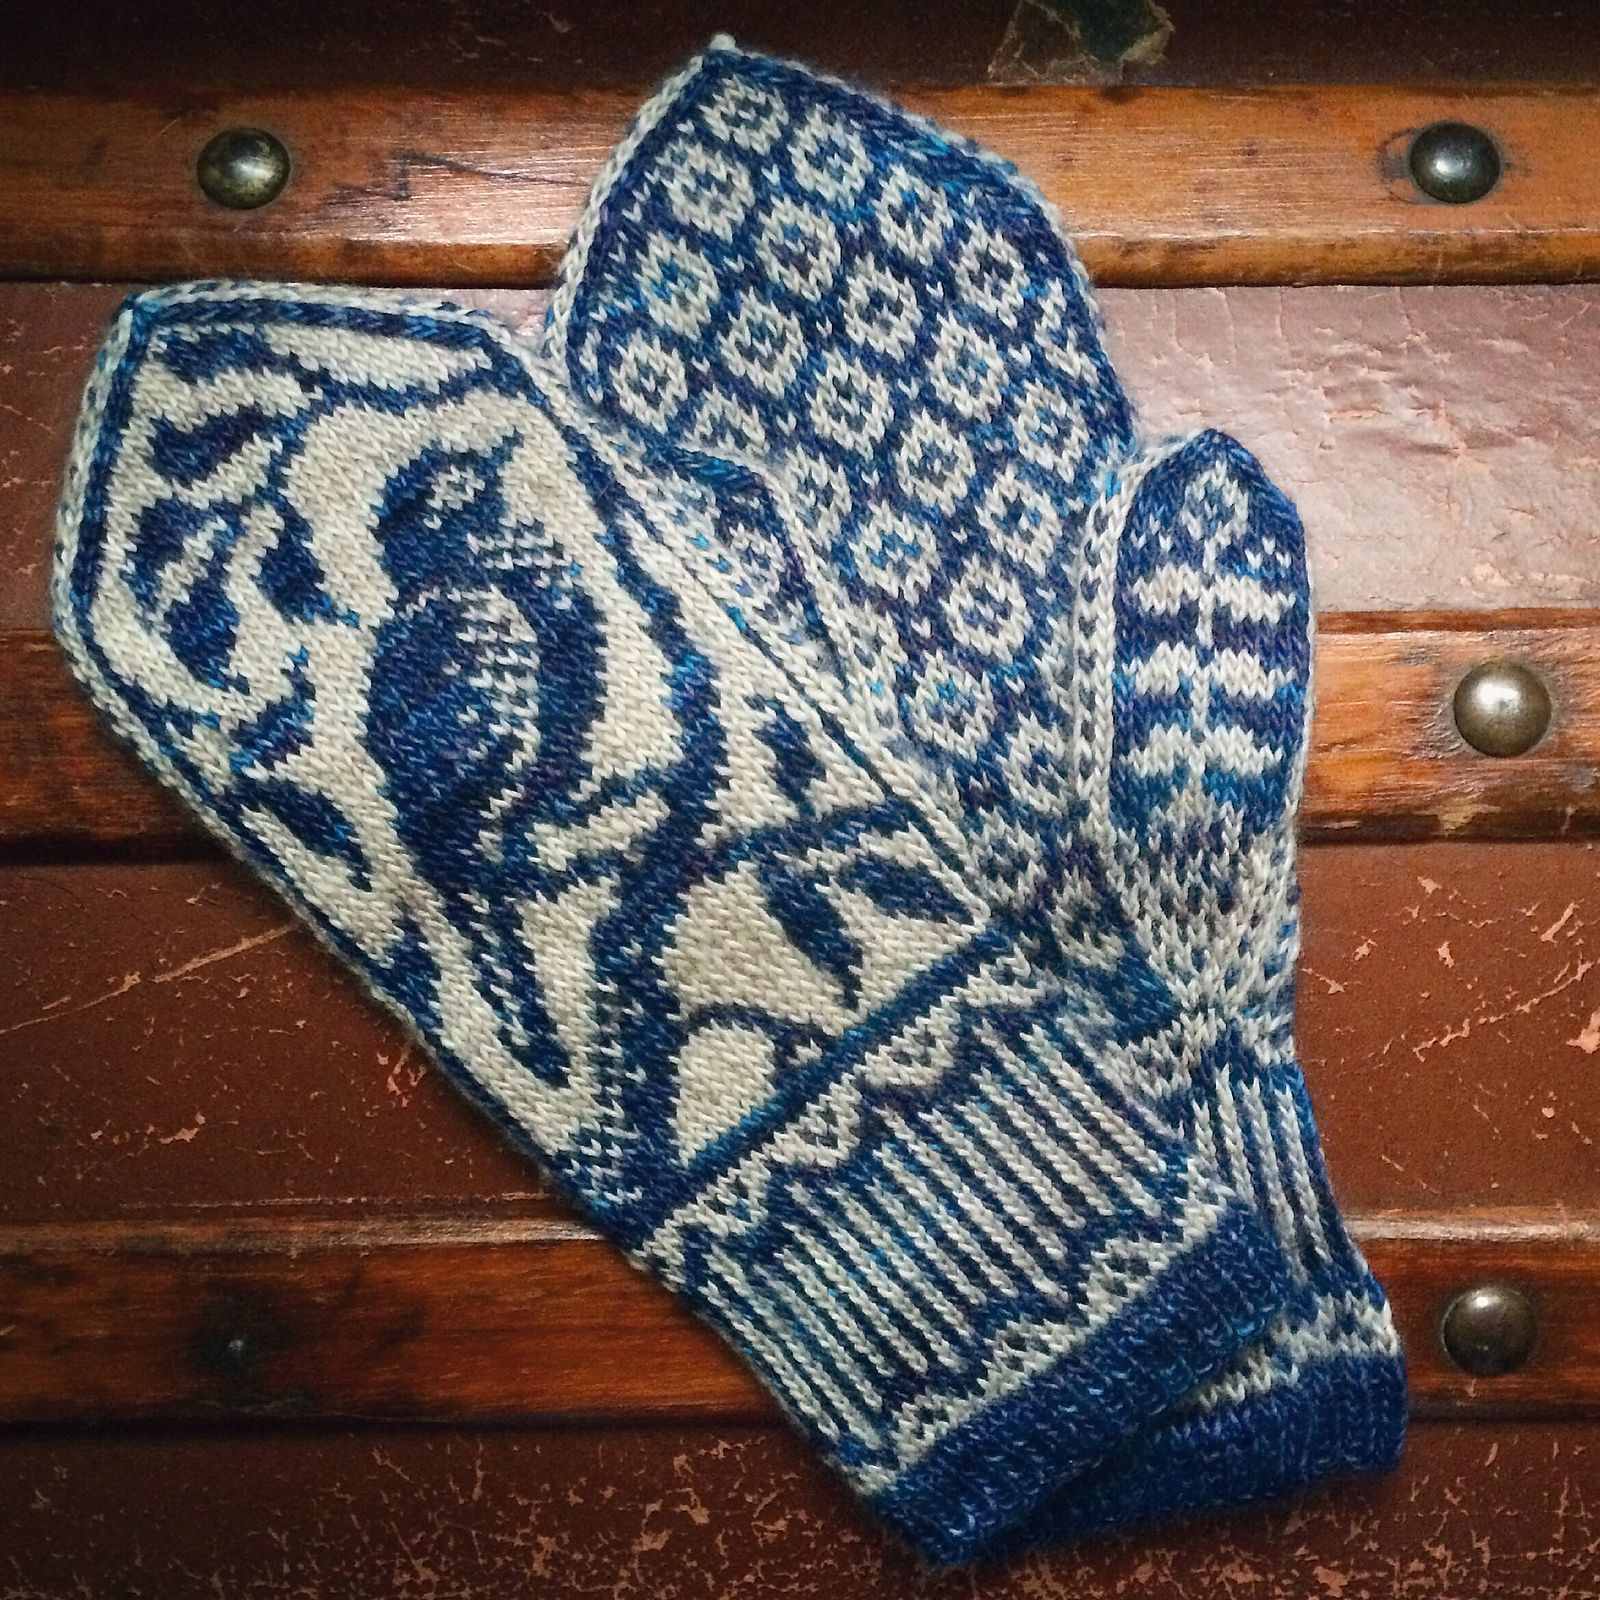 Songbird Mittens pattern by Erica Heusser | Mittens, Ravelry and Gloves